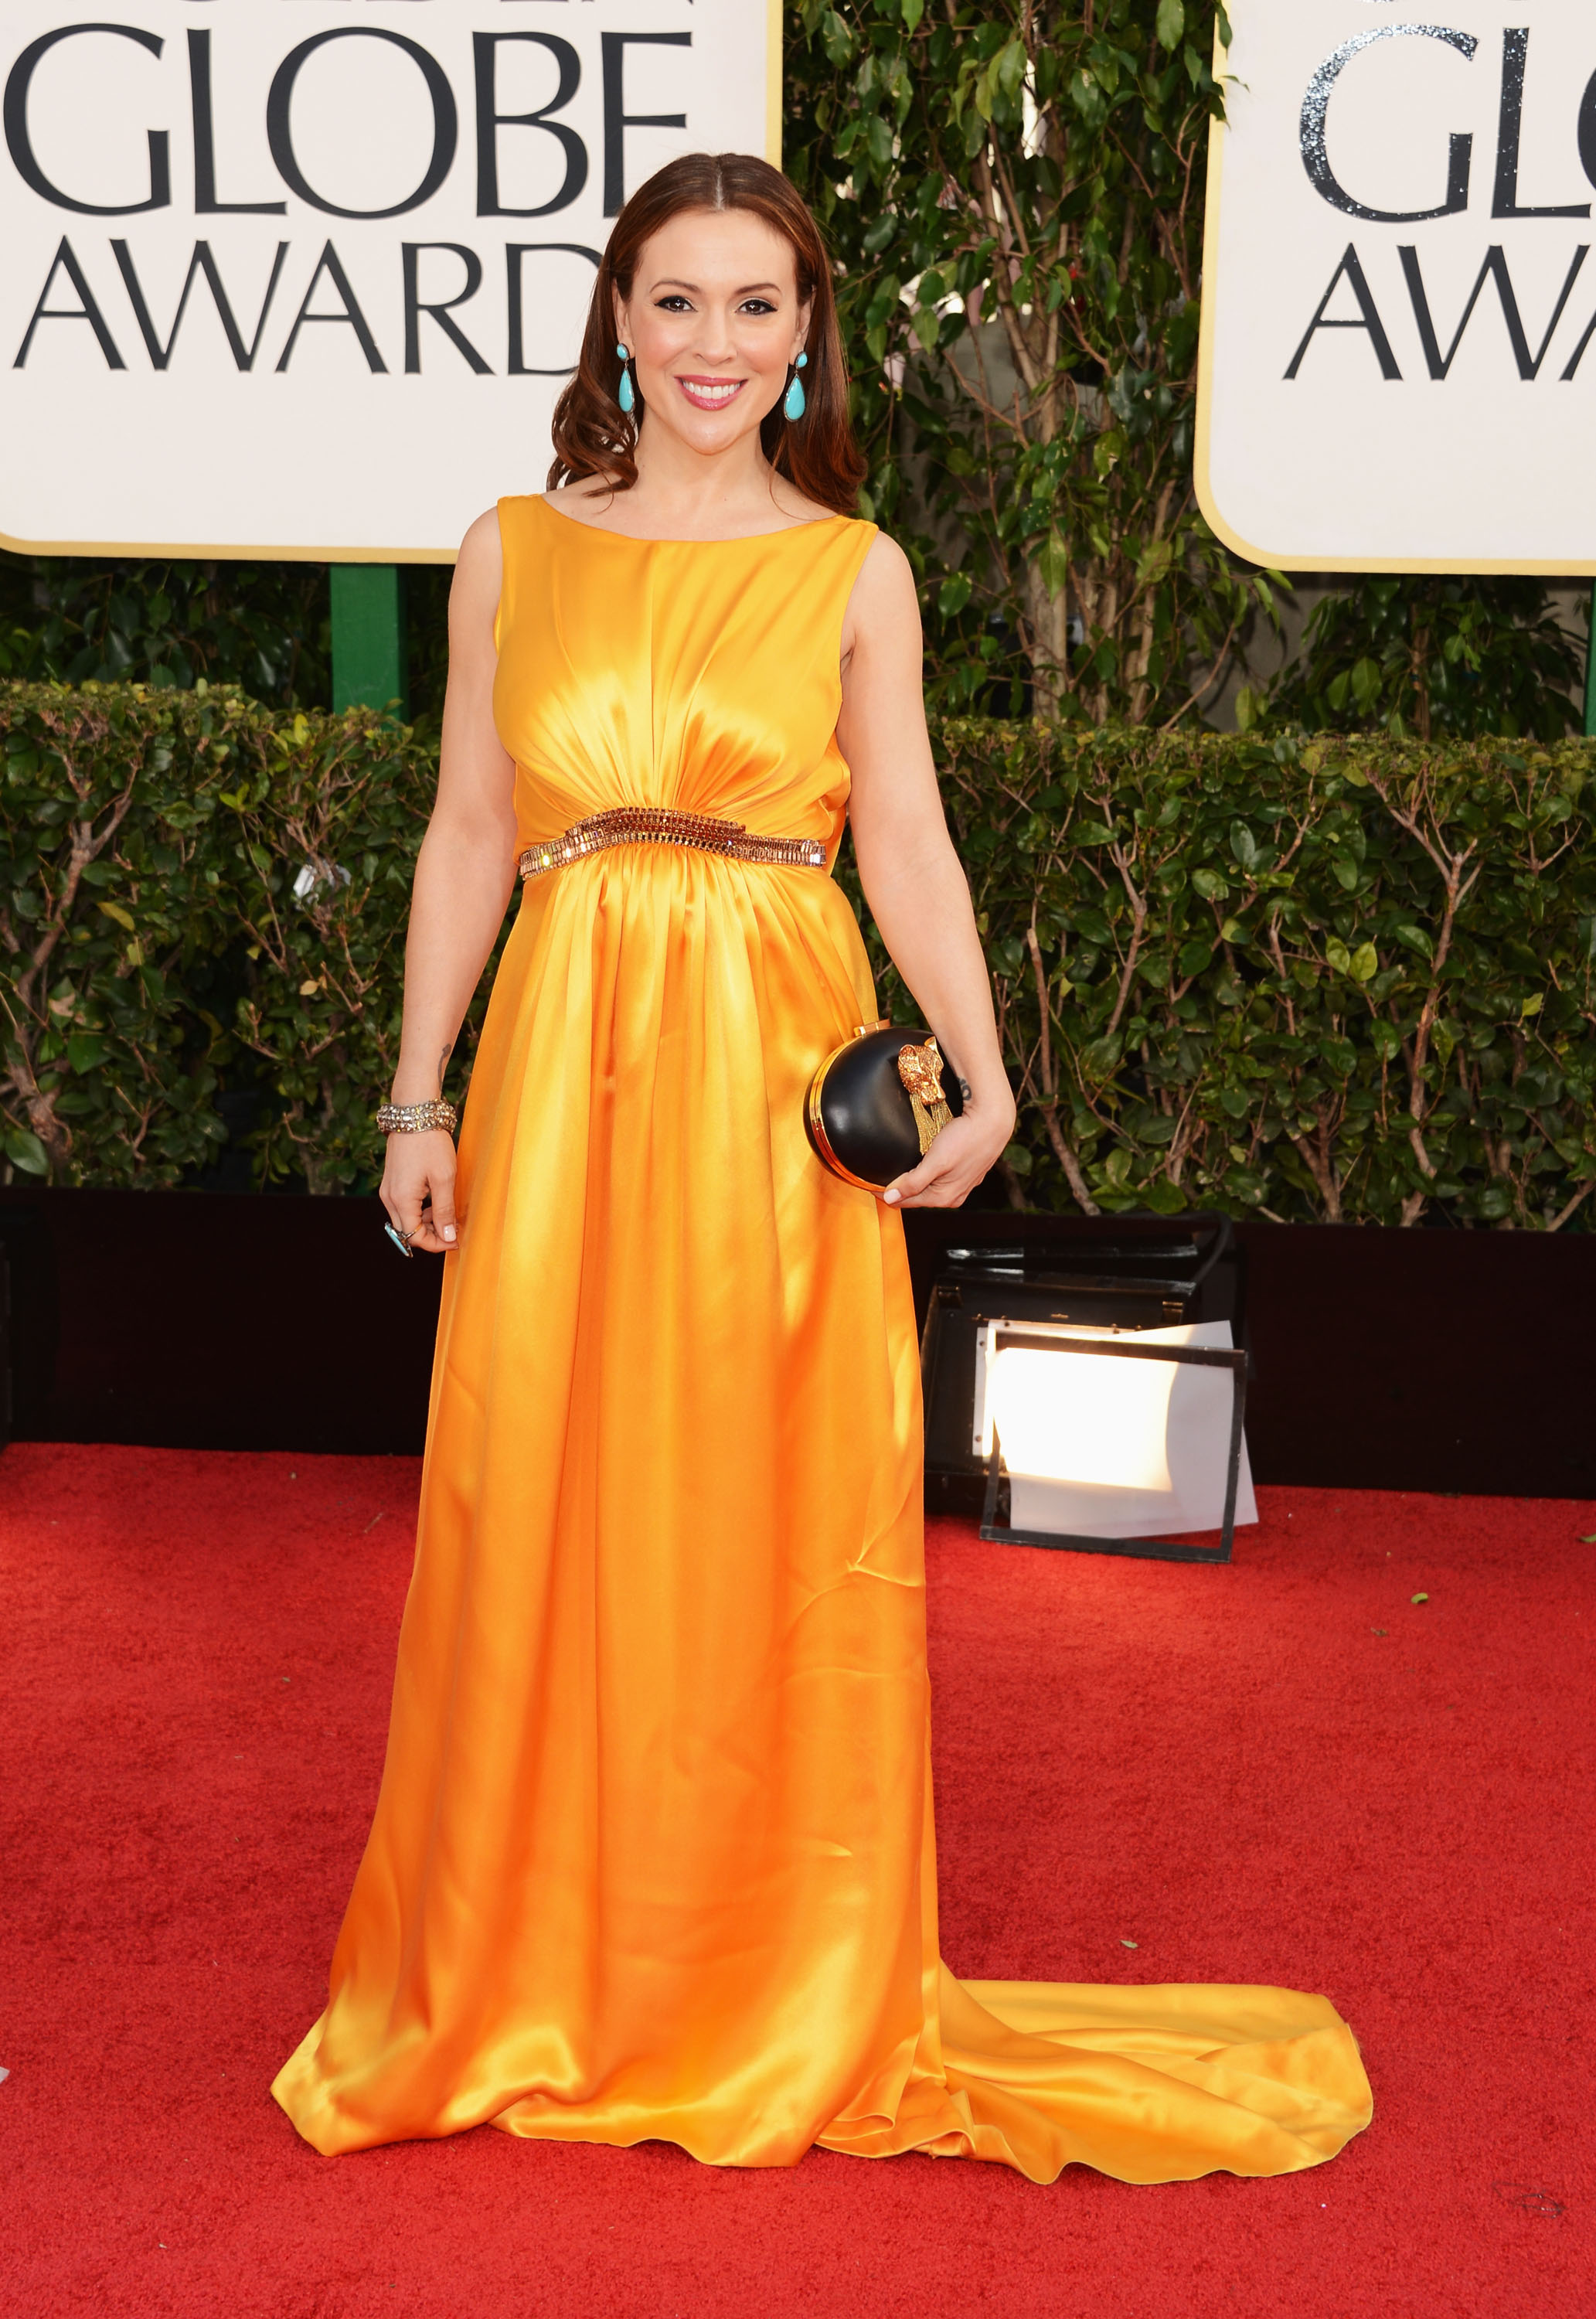 273116475_Alyssa_Milano_Golden_Globe_Awards5_122_989lo.jpg